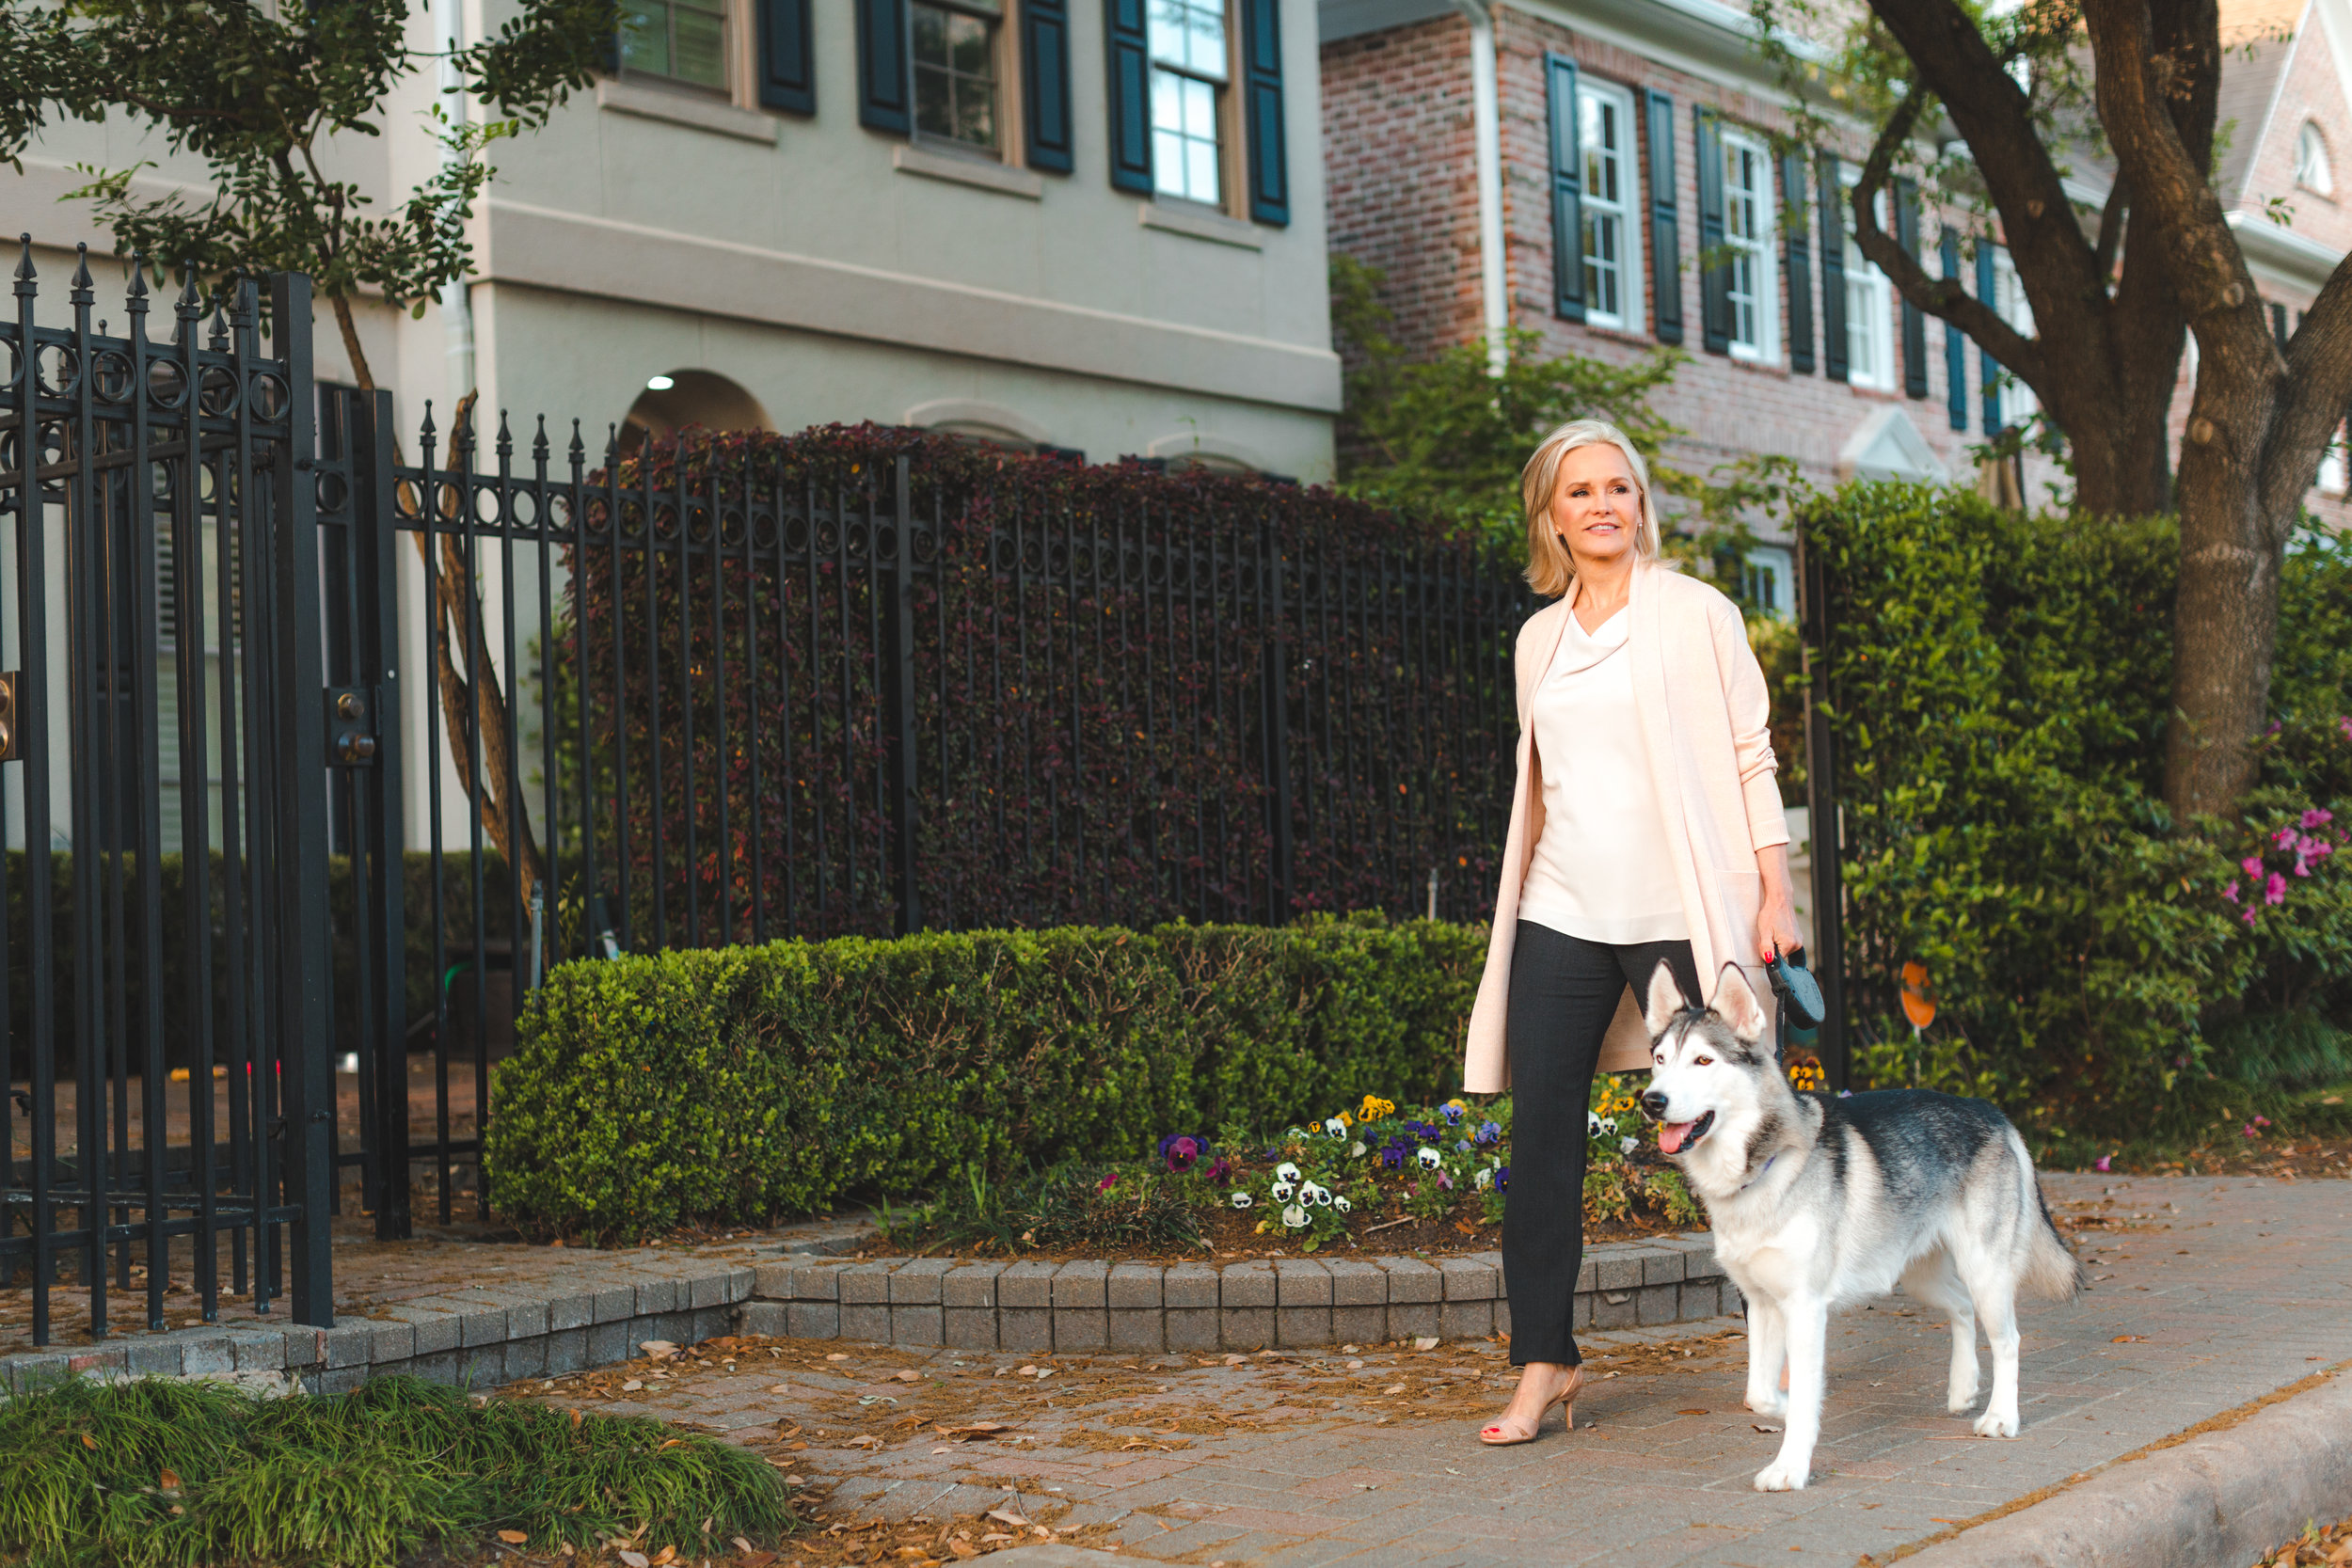 Family law attorney, and founder of Love, Money & the Law, Cindy Hide, taking her dog, star, for a walk around the block outside of her family law practice in Houston, Texas.